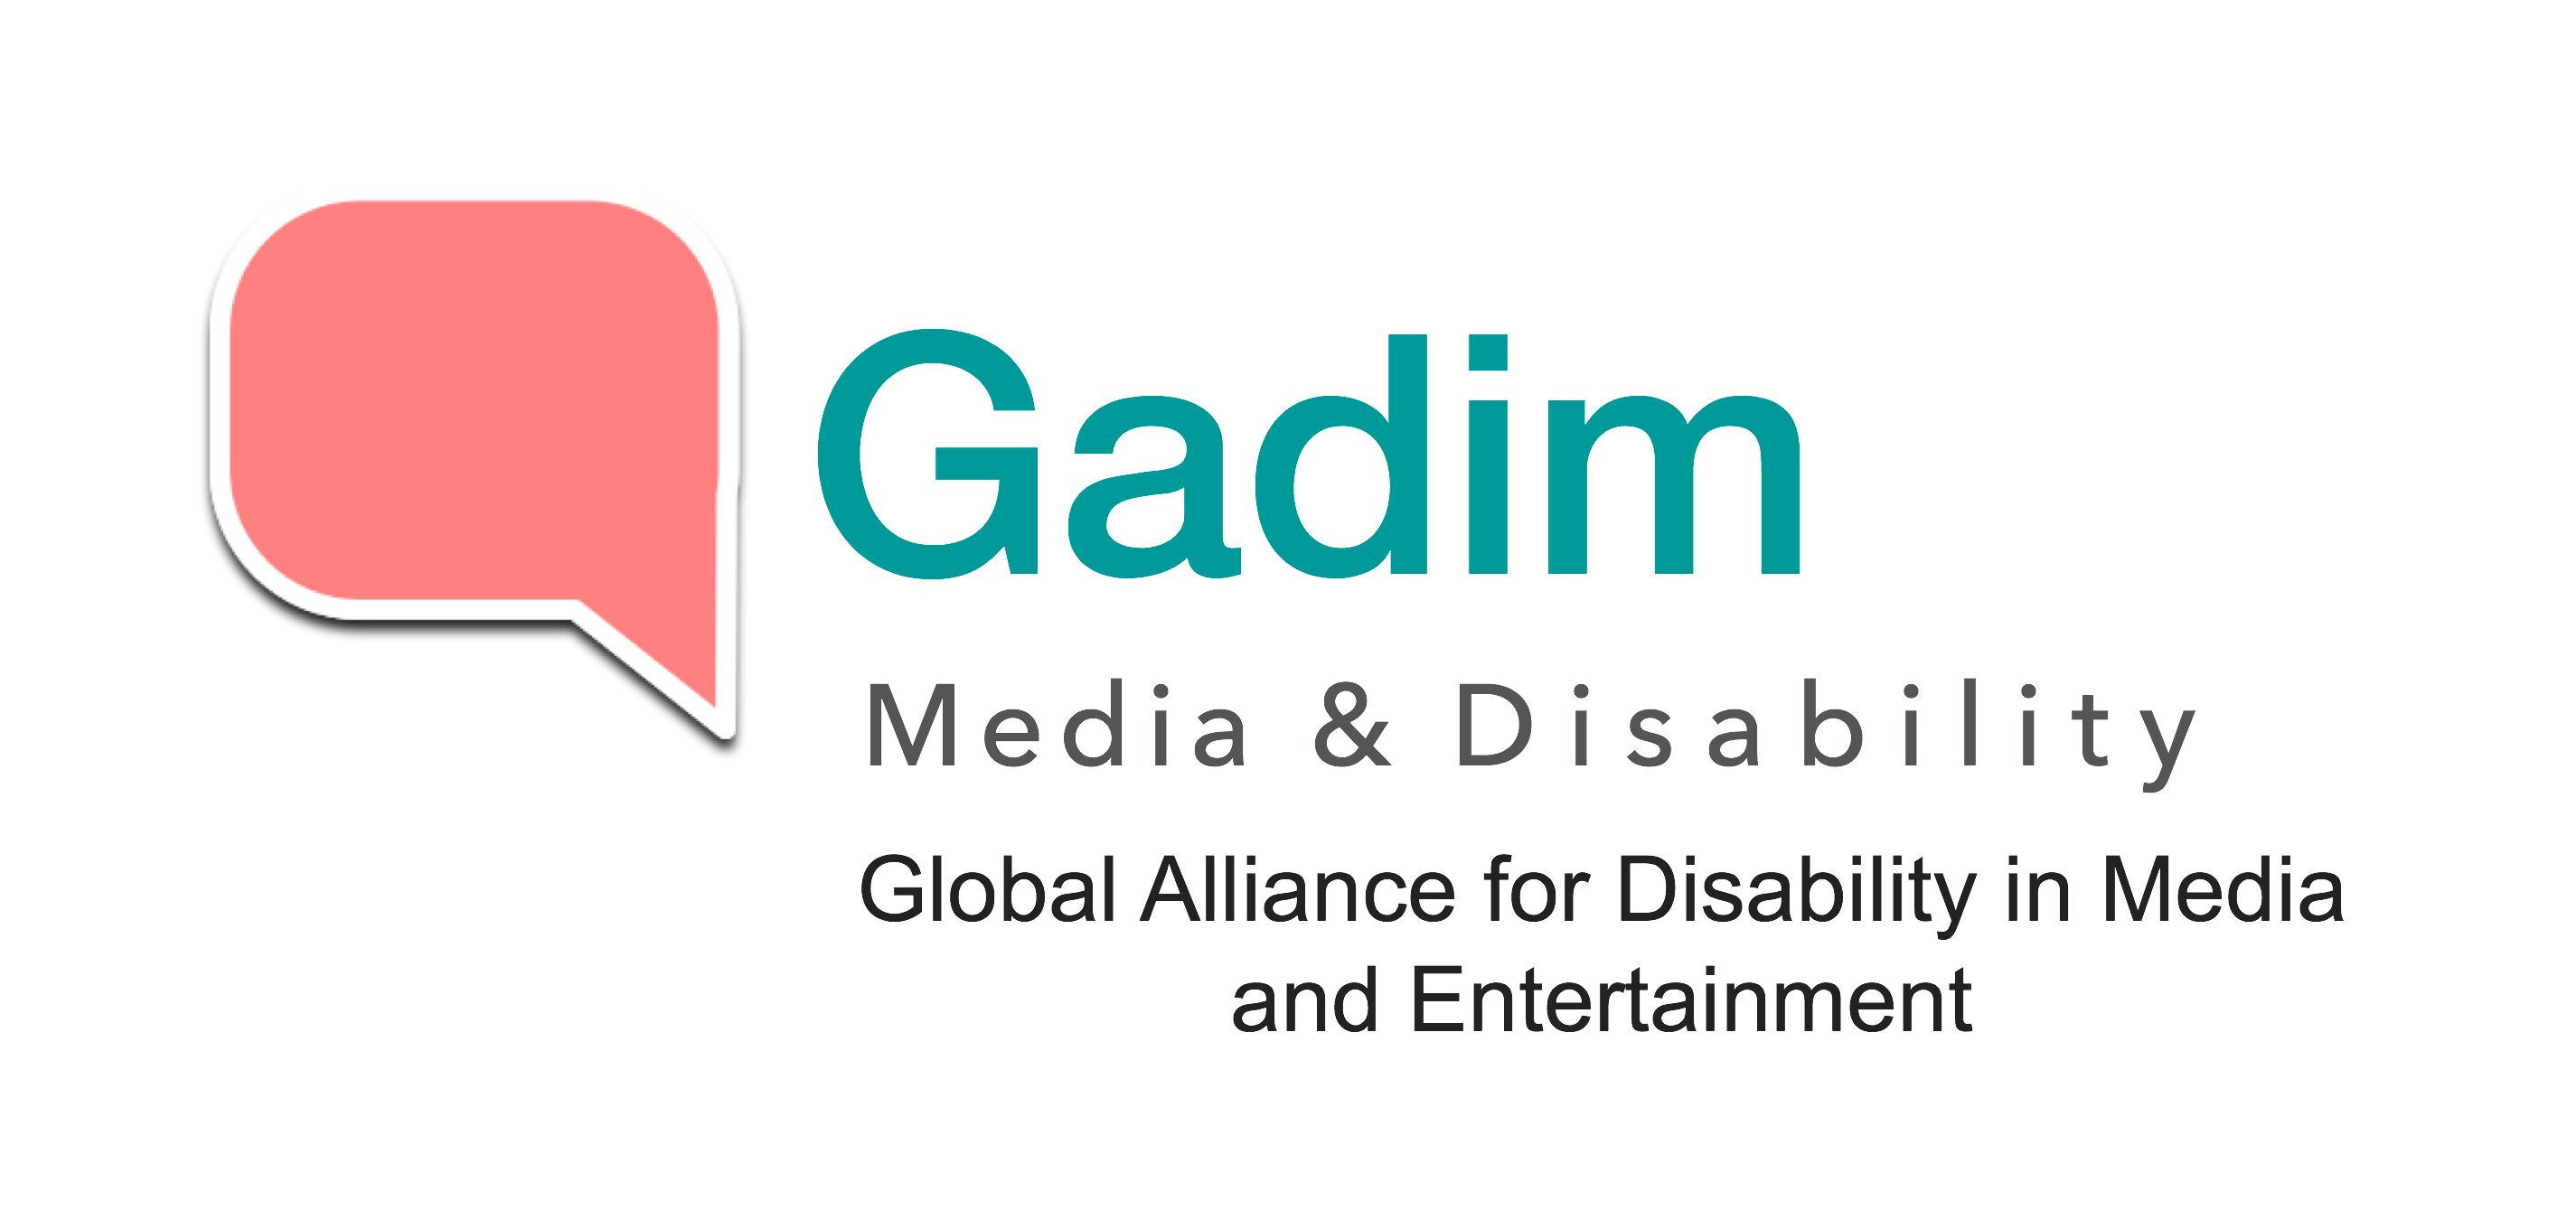 balaozinho rosa, em letras verdes gadim - media and disability - global alliance for disability in media and entertainment.